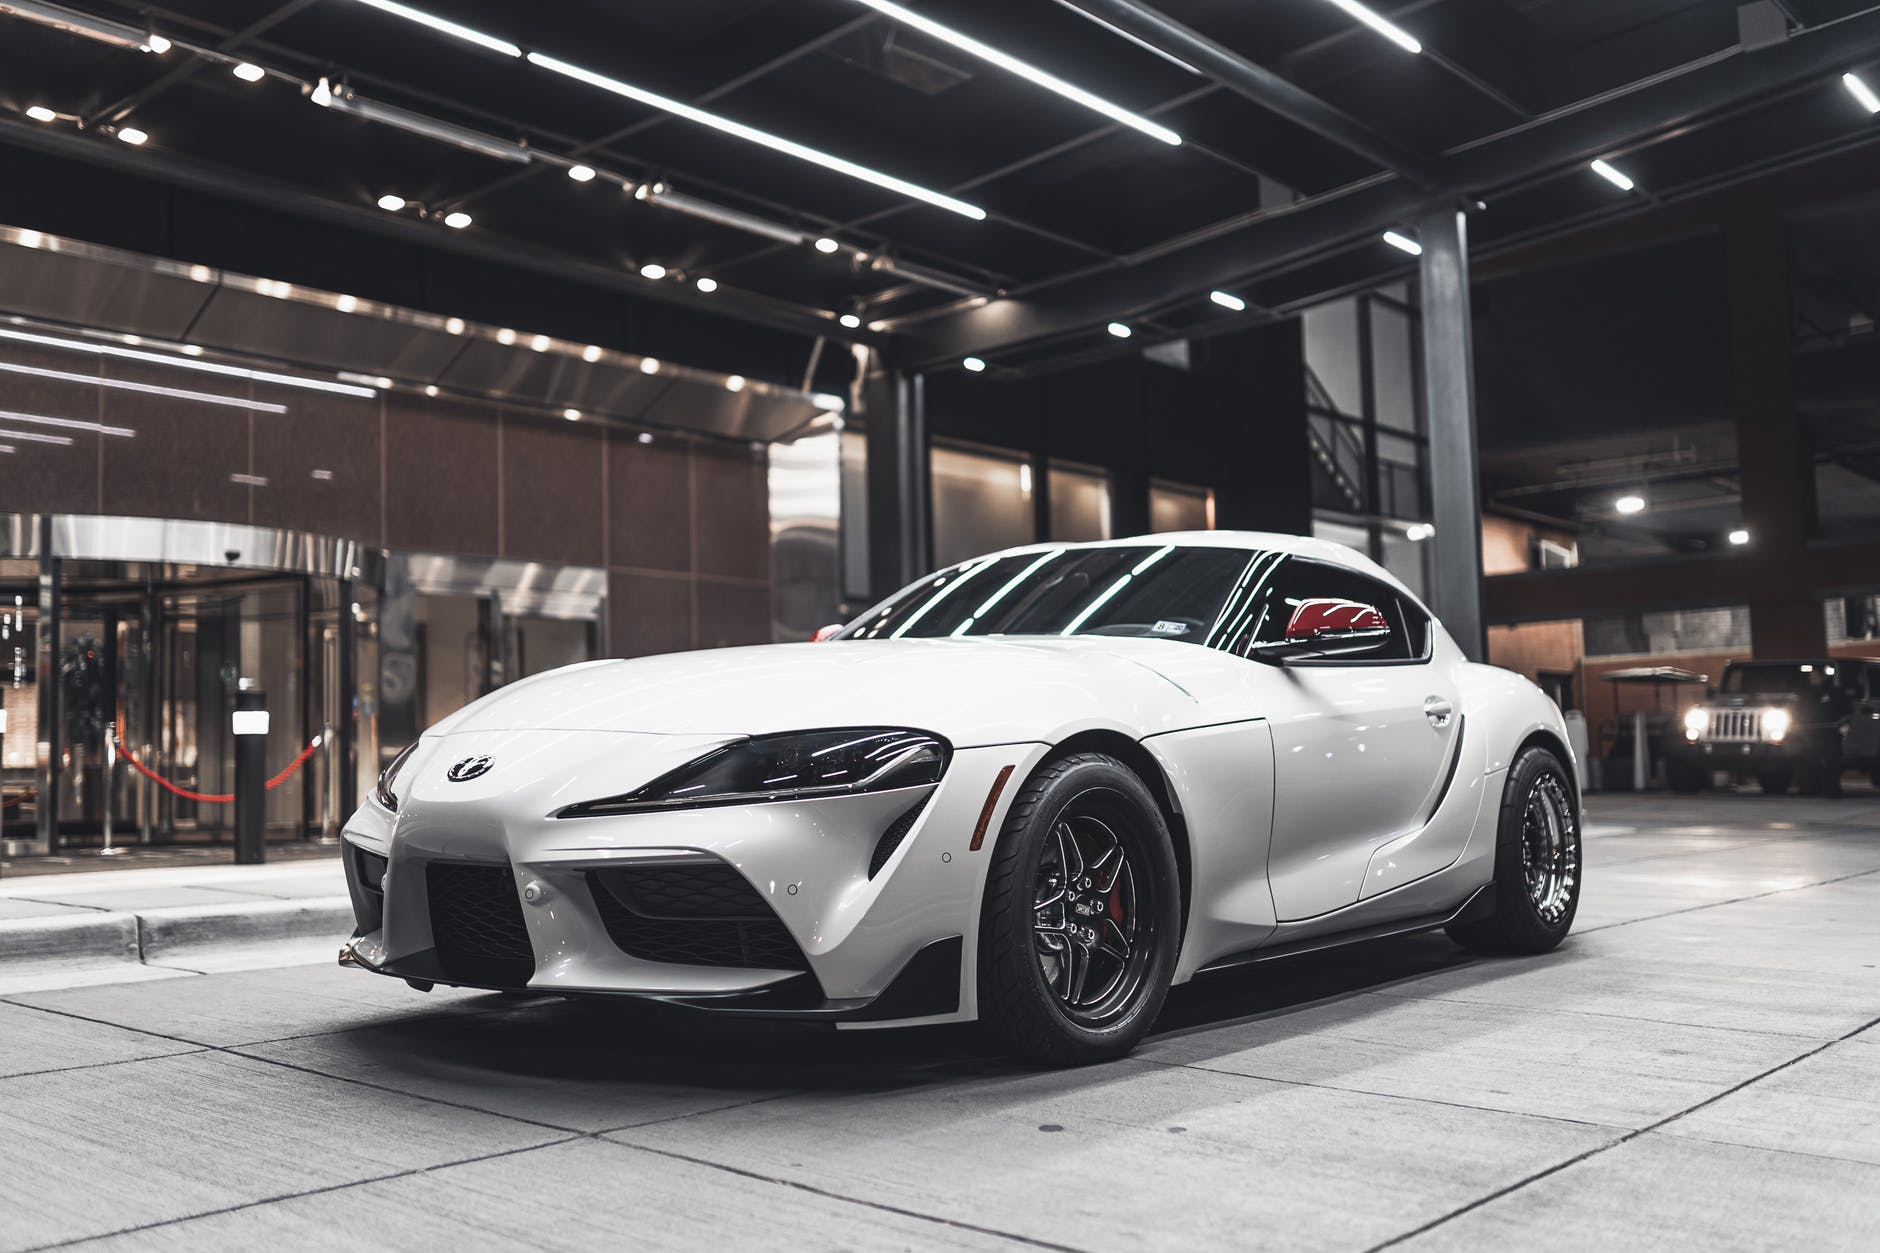 photo of supra parked in front of building